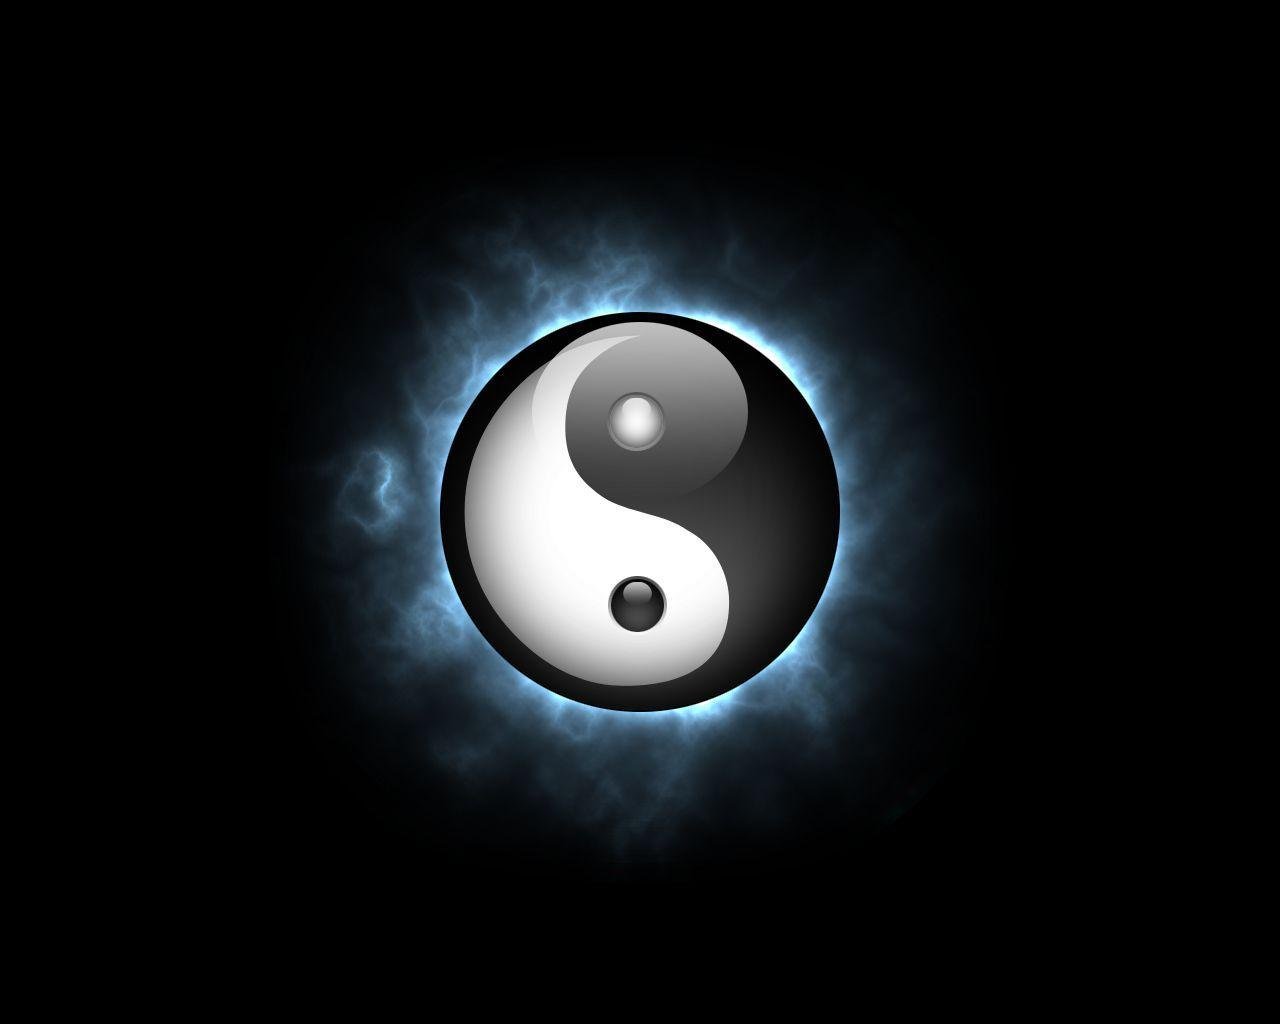 Ying And Yang Wallpapers - Wallpaper Cave